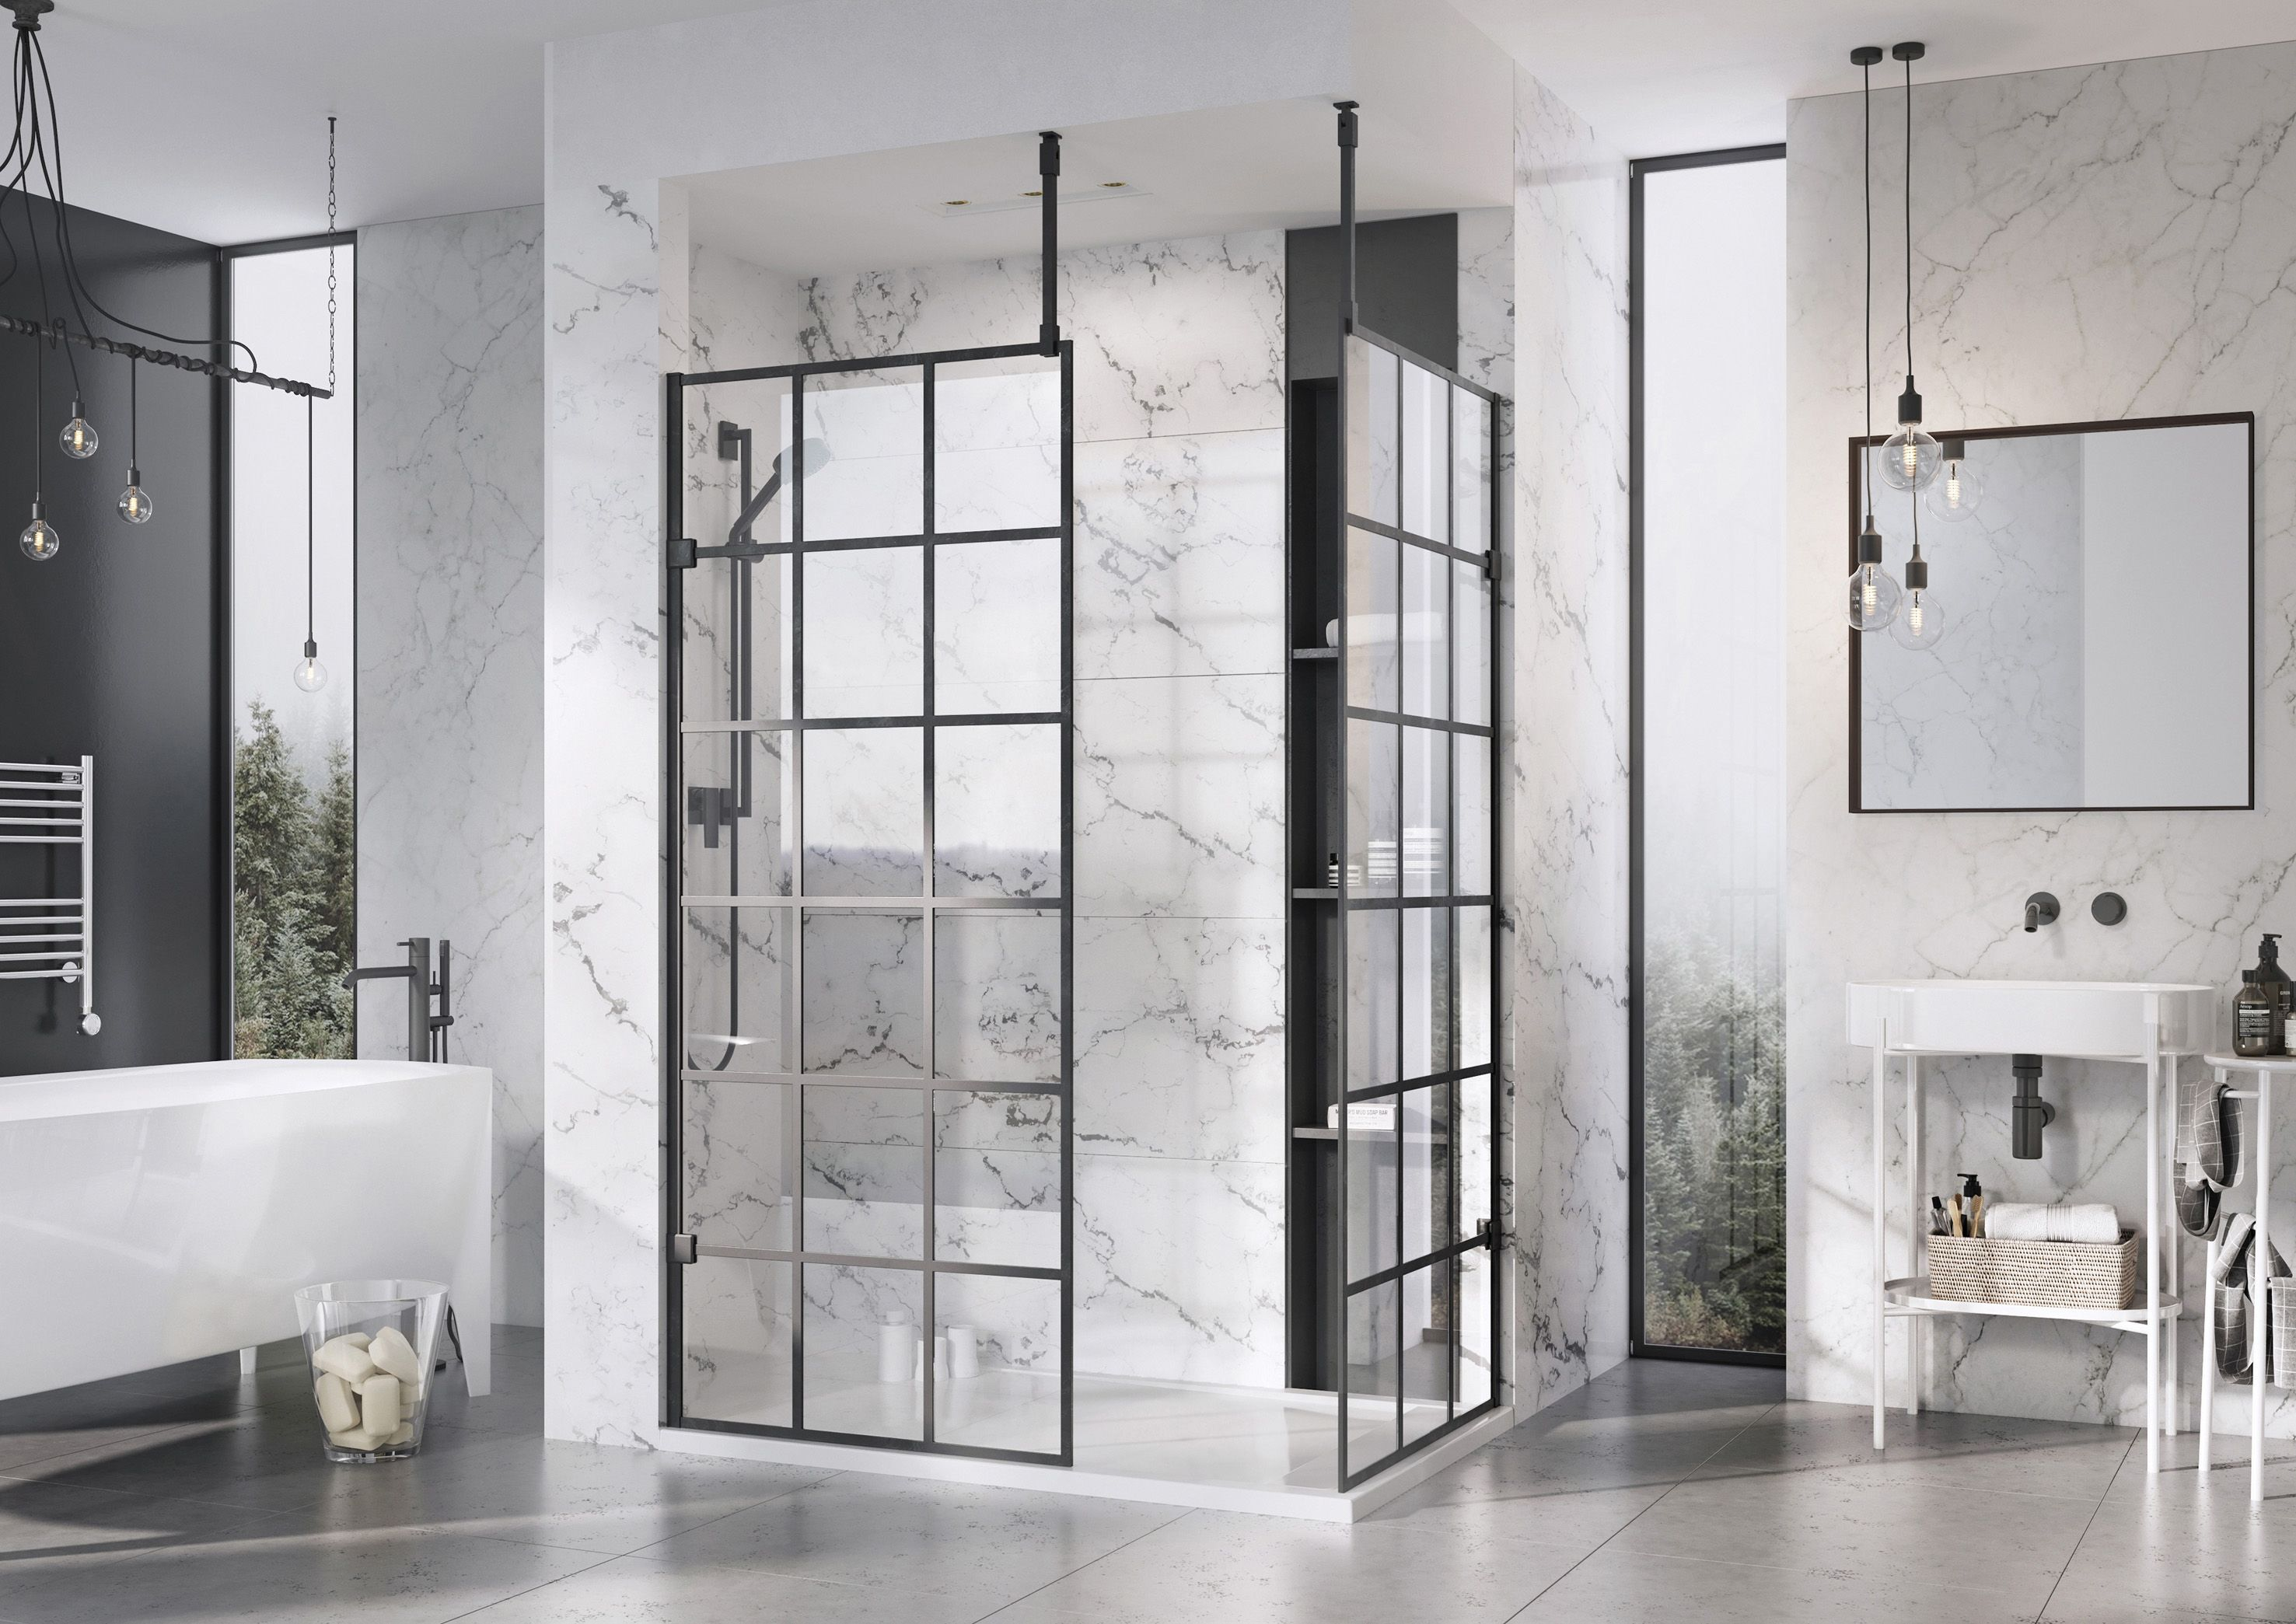 Roman S Black Grid Printed Glass Wetroom Panels Blackandwhite Bathroomideas Bathroomdesign Bathroomdecor Bathr Shower Screen Bathroom Trends Shower Panels